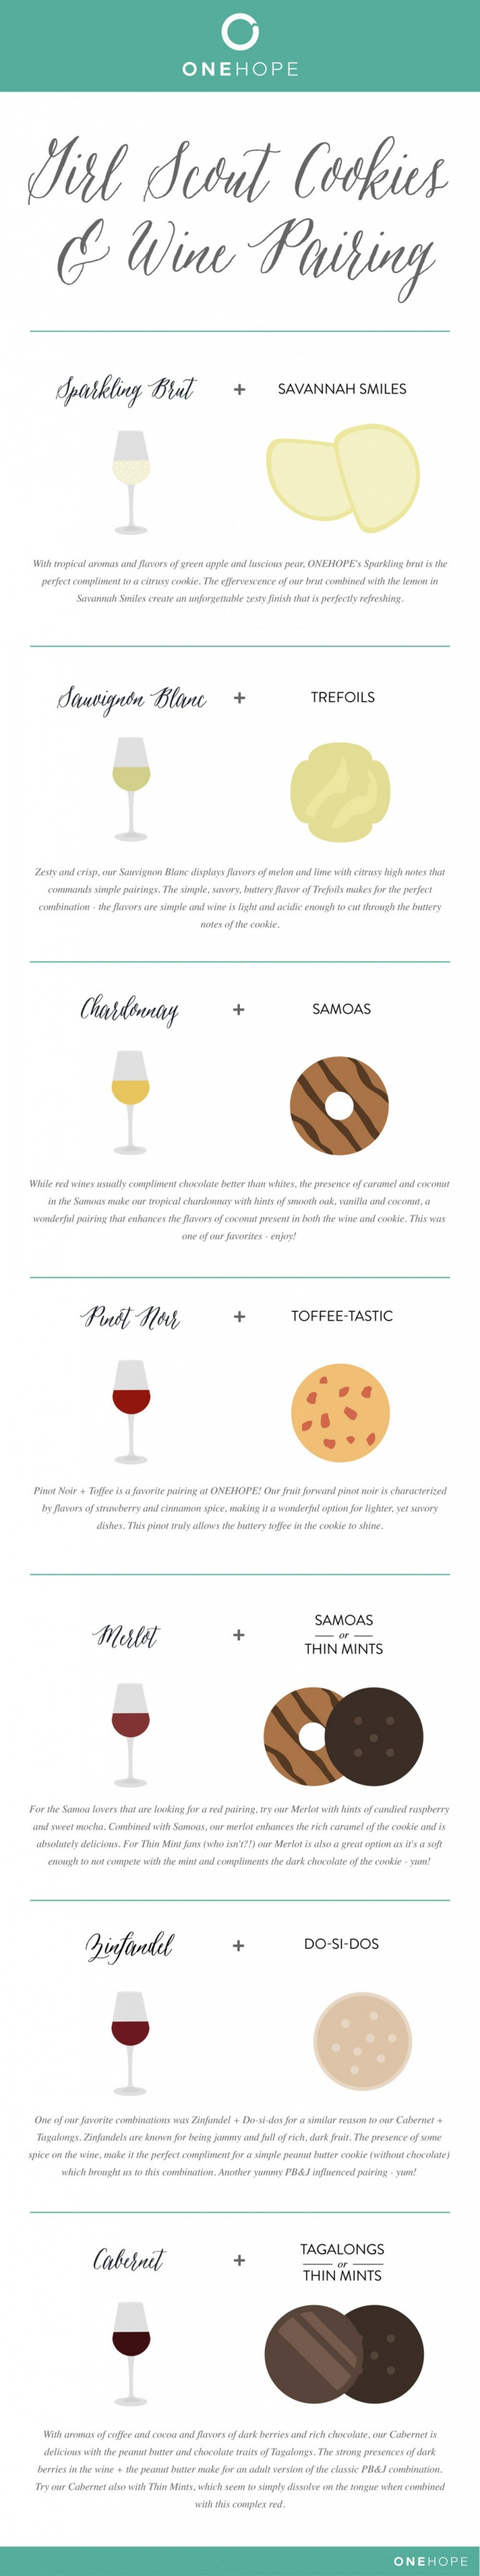 Ultimate Guide to Girl Scout Cookies & Wine Pairing Infographic